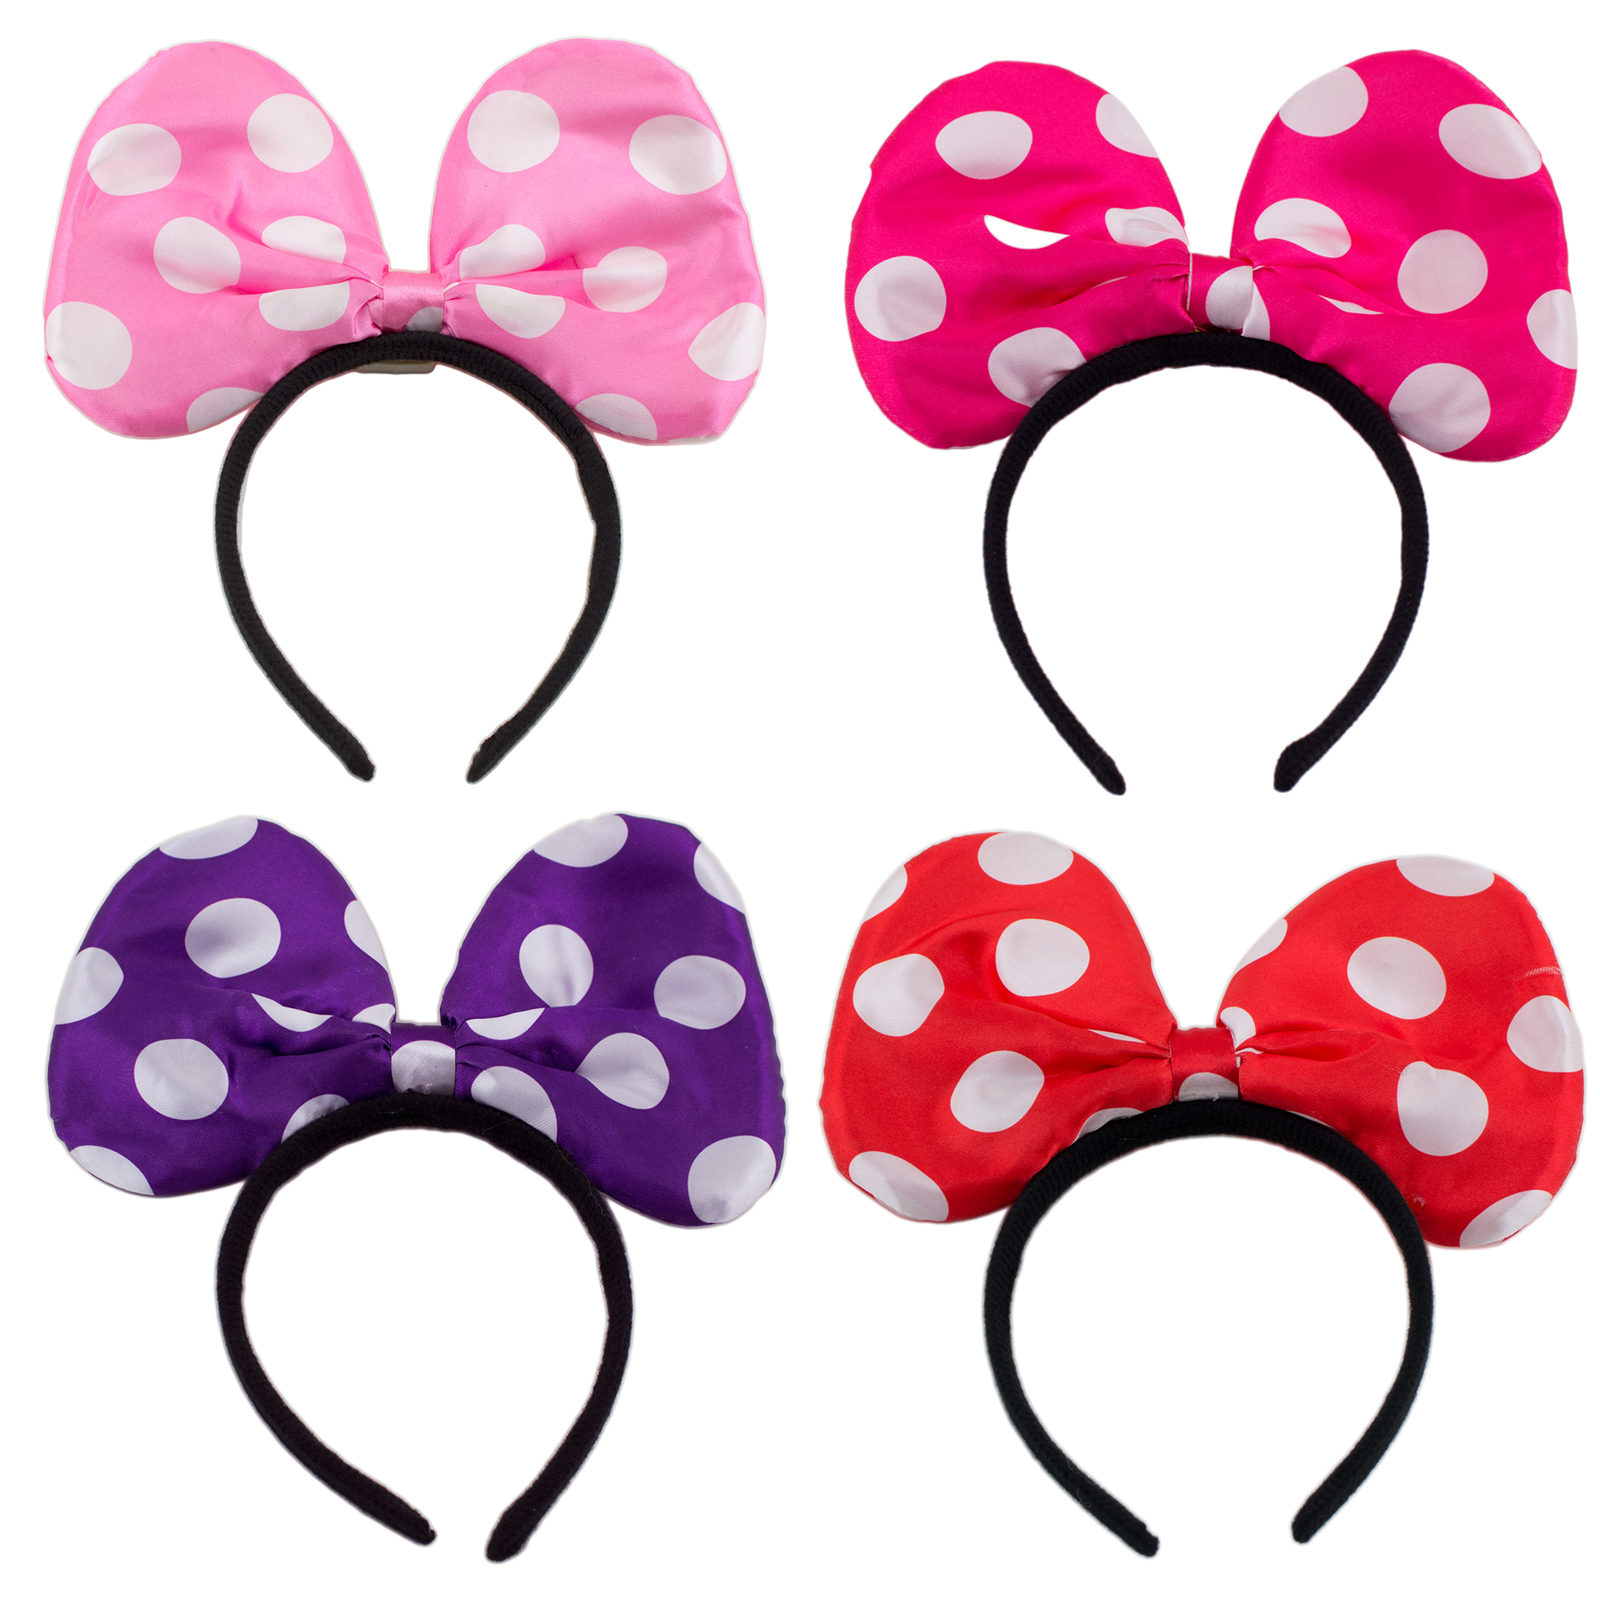 1600x1600 Minnie Mouse Bow Template Silhouette Clipart Sufficient Jpeg